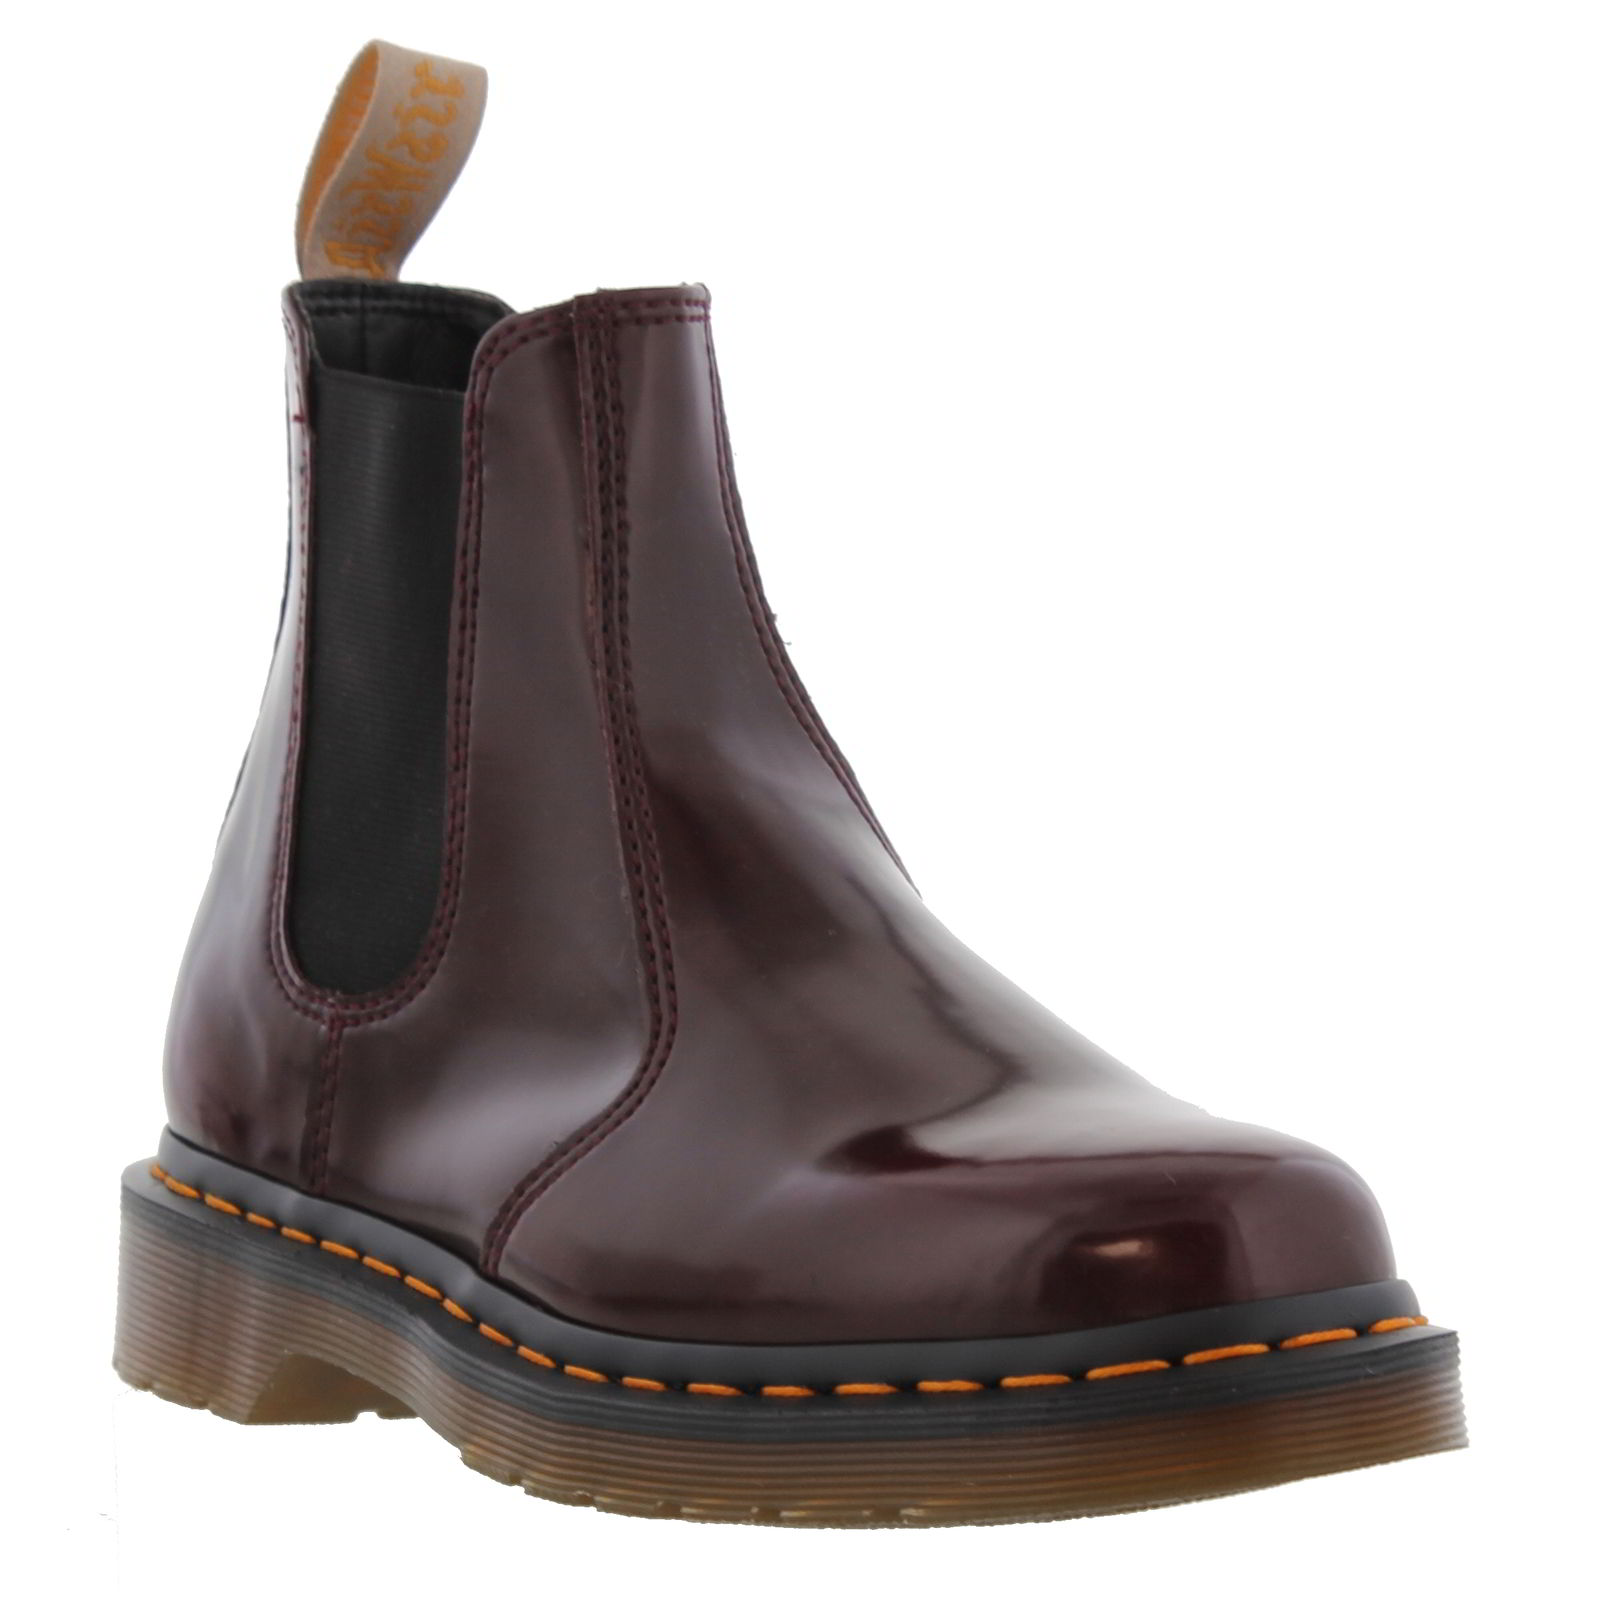 Popular Clean And Classic, The Womens DrMartens Eleanore Chelsea Boot Can Be Paired With Almost Anything Expect Long Lasting Durability In The Dr Martens Eleanore, As It Is Constructed With A Pebbled Fullgrain Leather Upper, And Goodyear